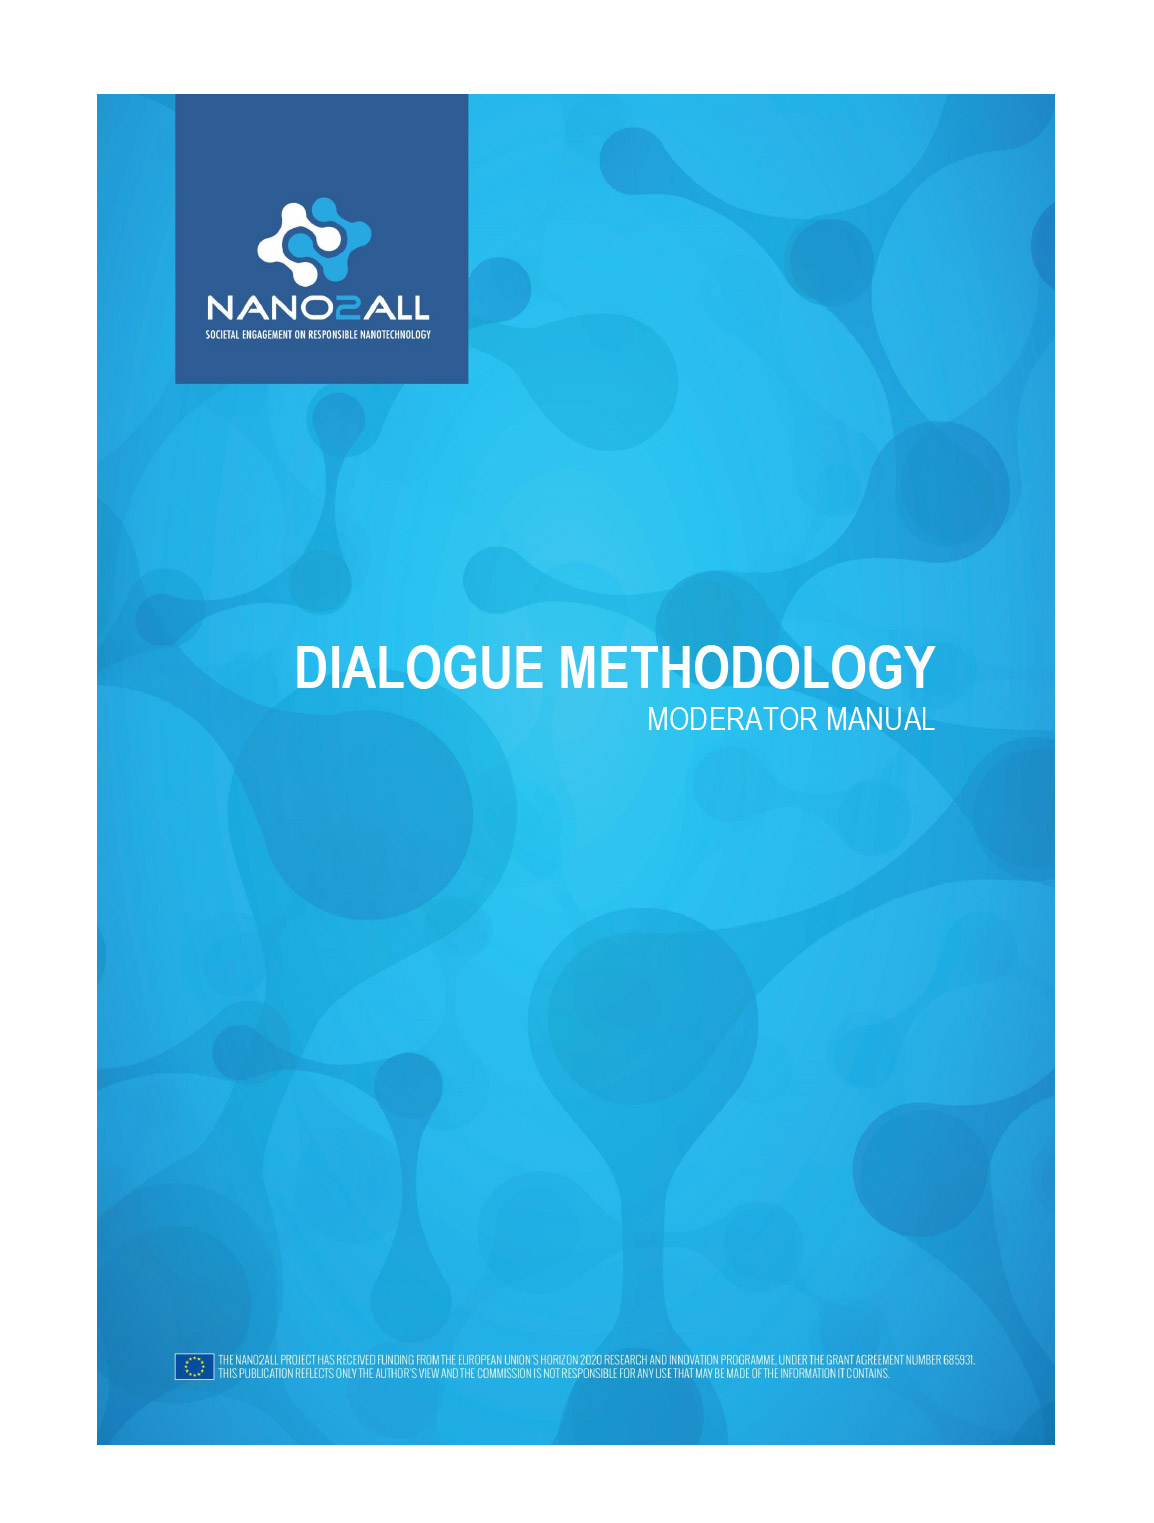 image: NANO2ALL Dialogue methodology 1